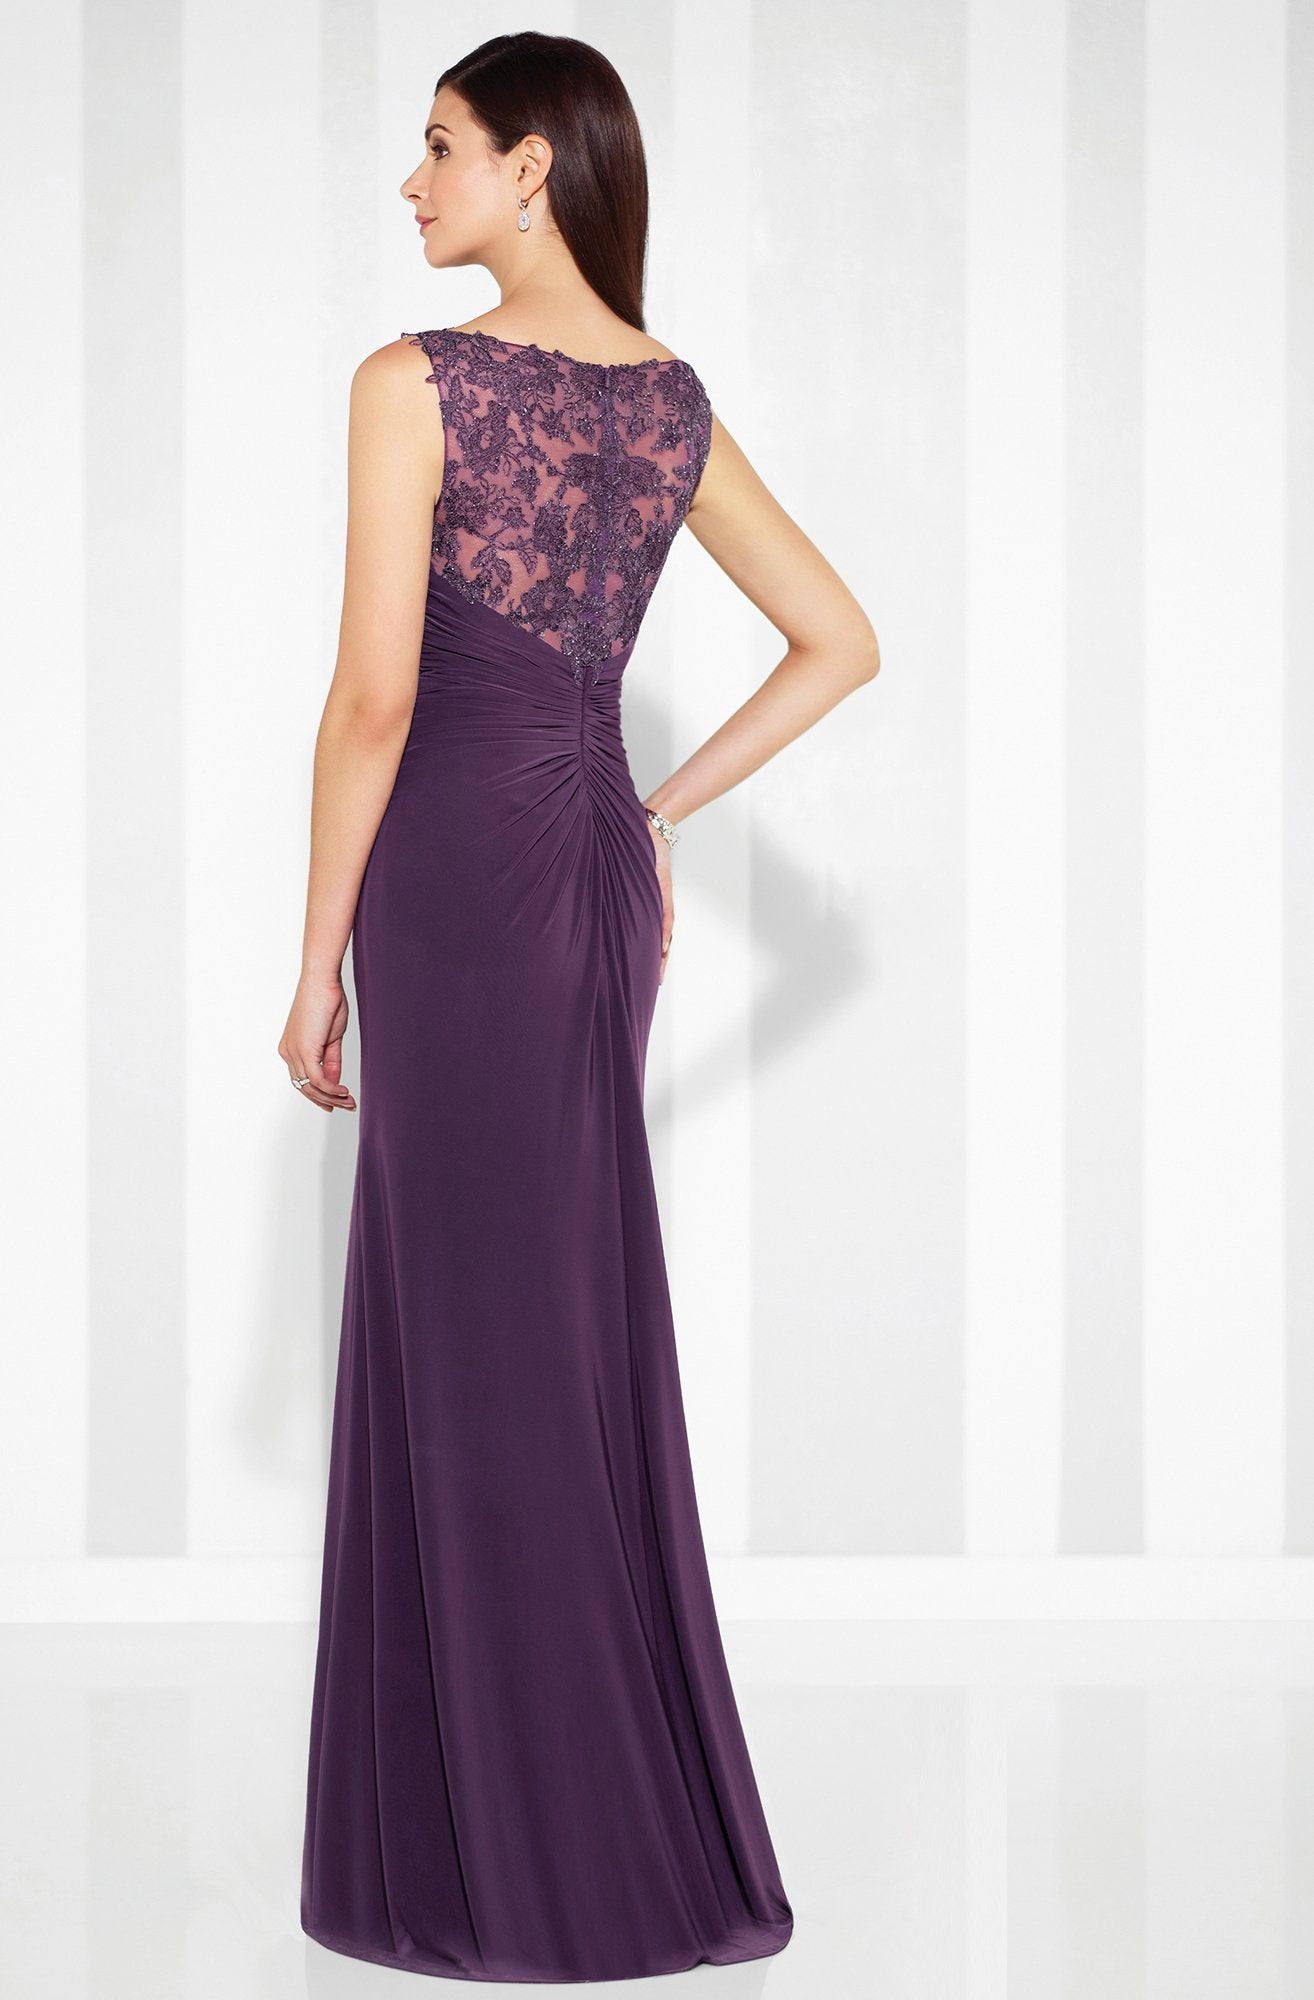 Mon Cheri - Cameron Blake - Fit And Flare Gown 117613 In Purple